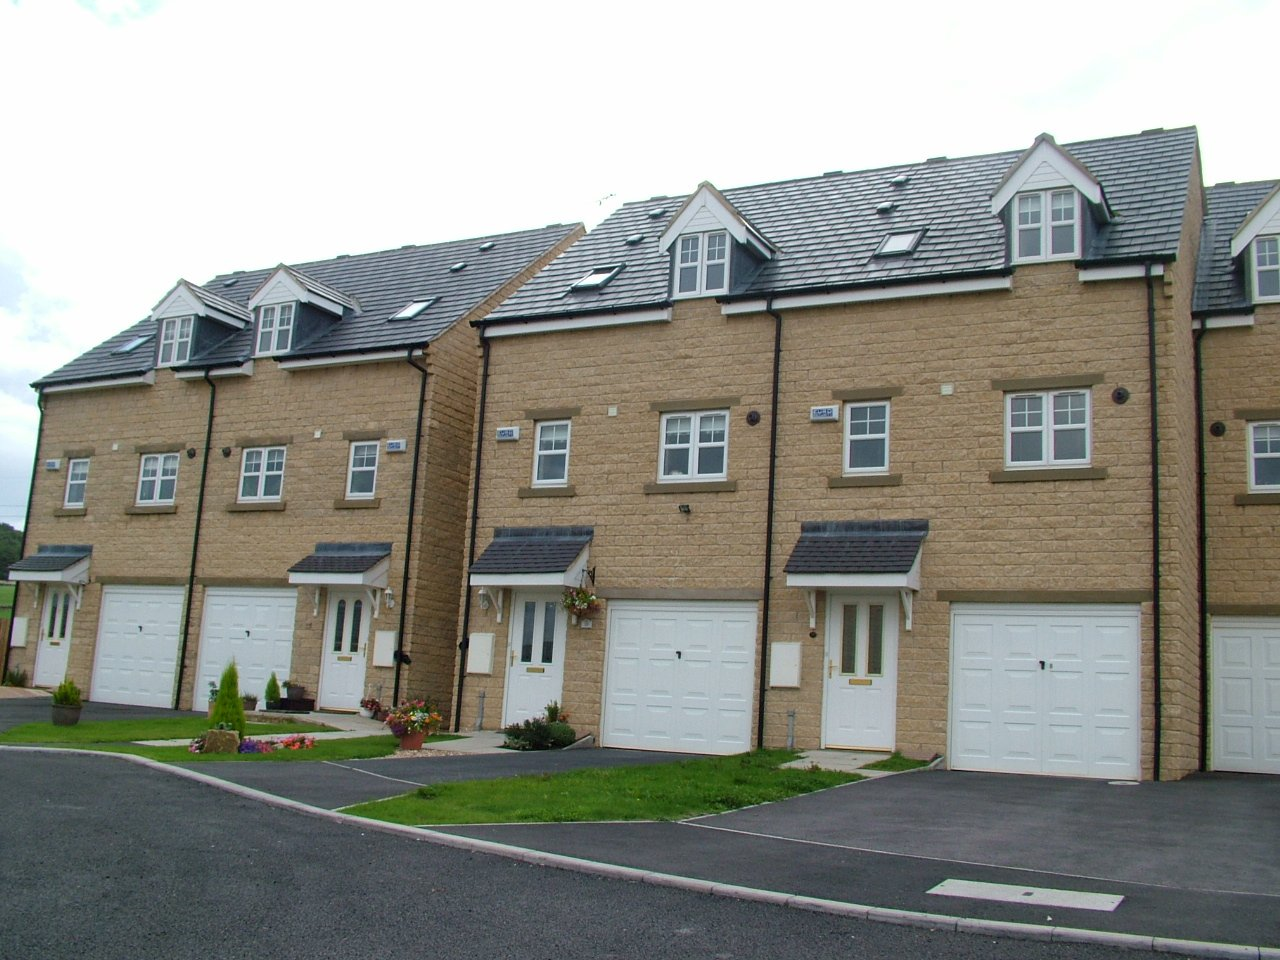 Stone & Block,3 storie houses for Redrow Homes Ltd, Elland